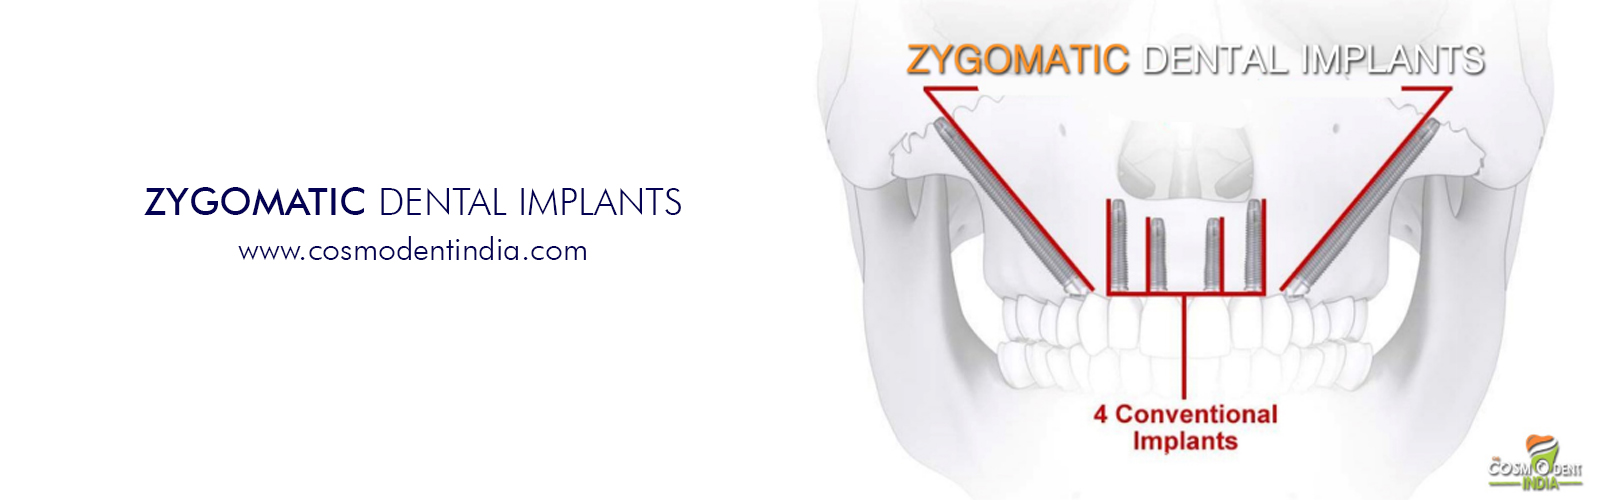 implants zygomatiques en Inde